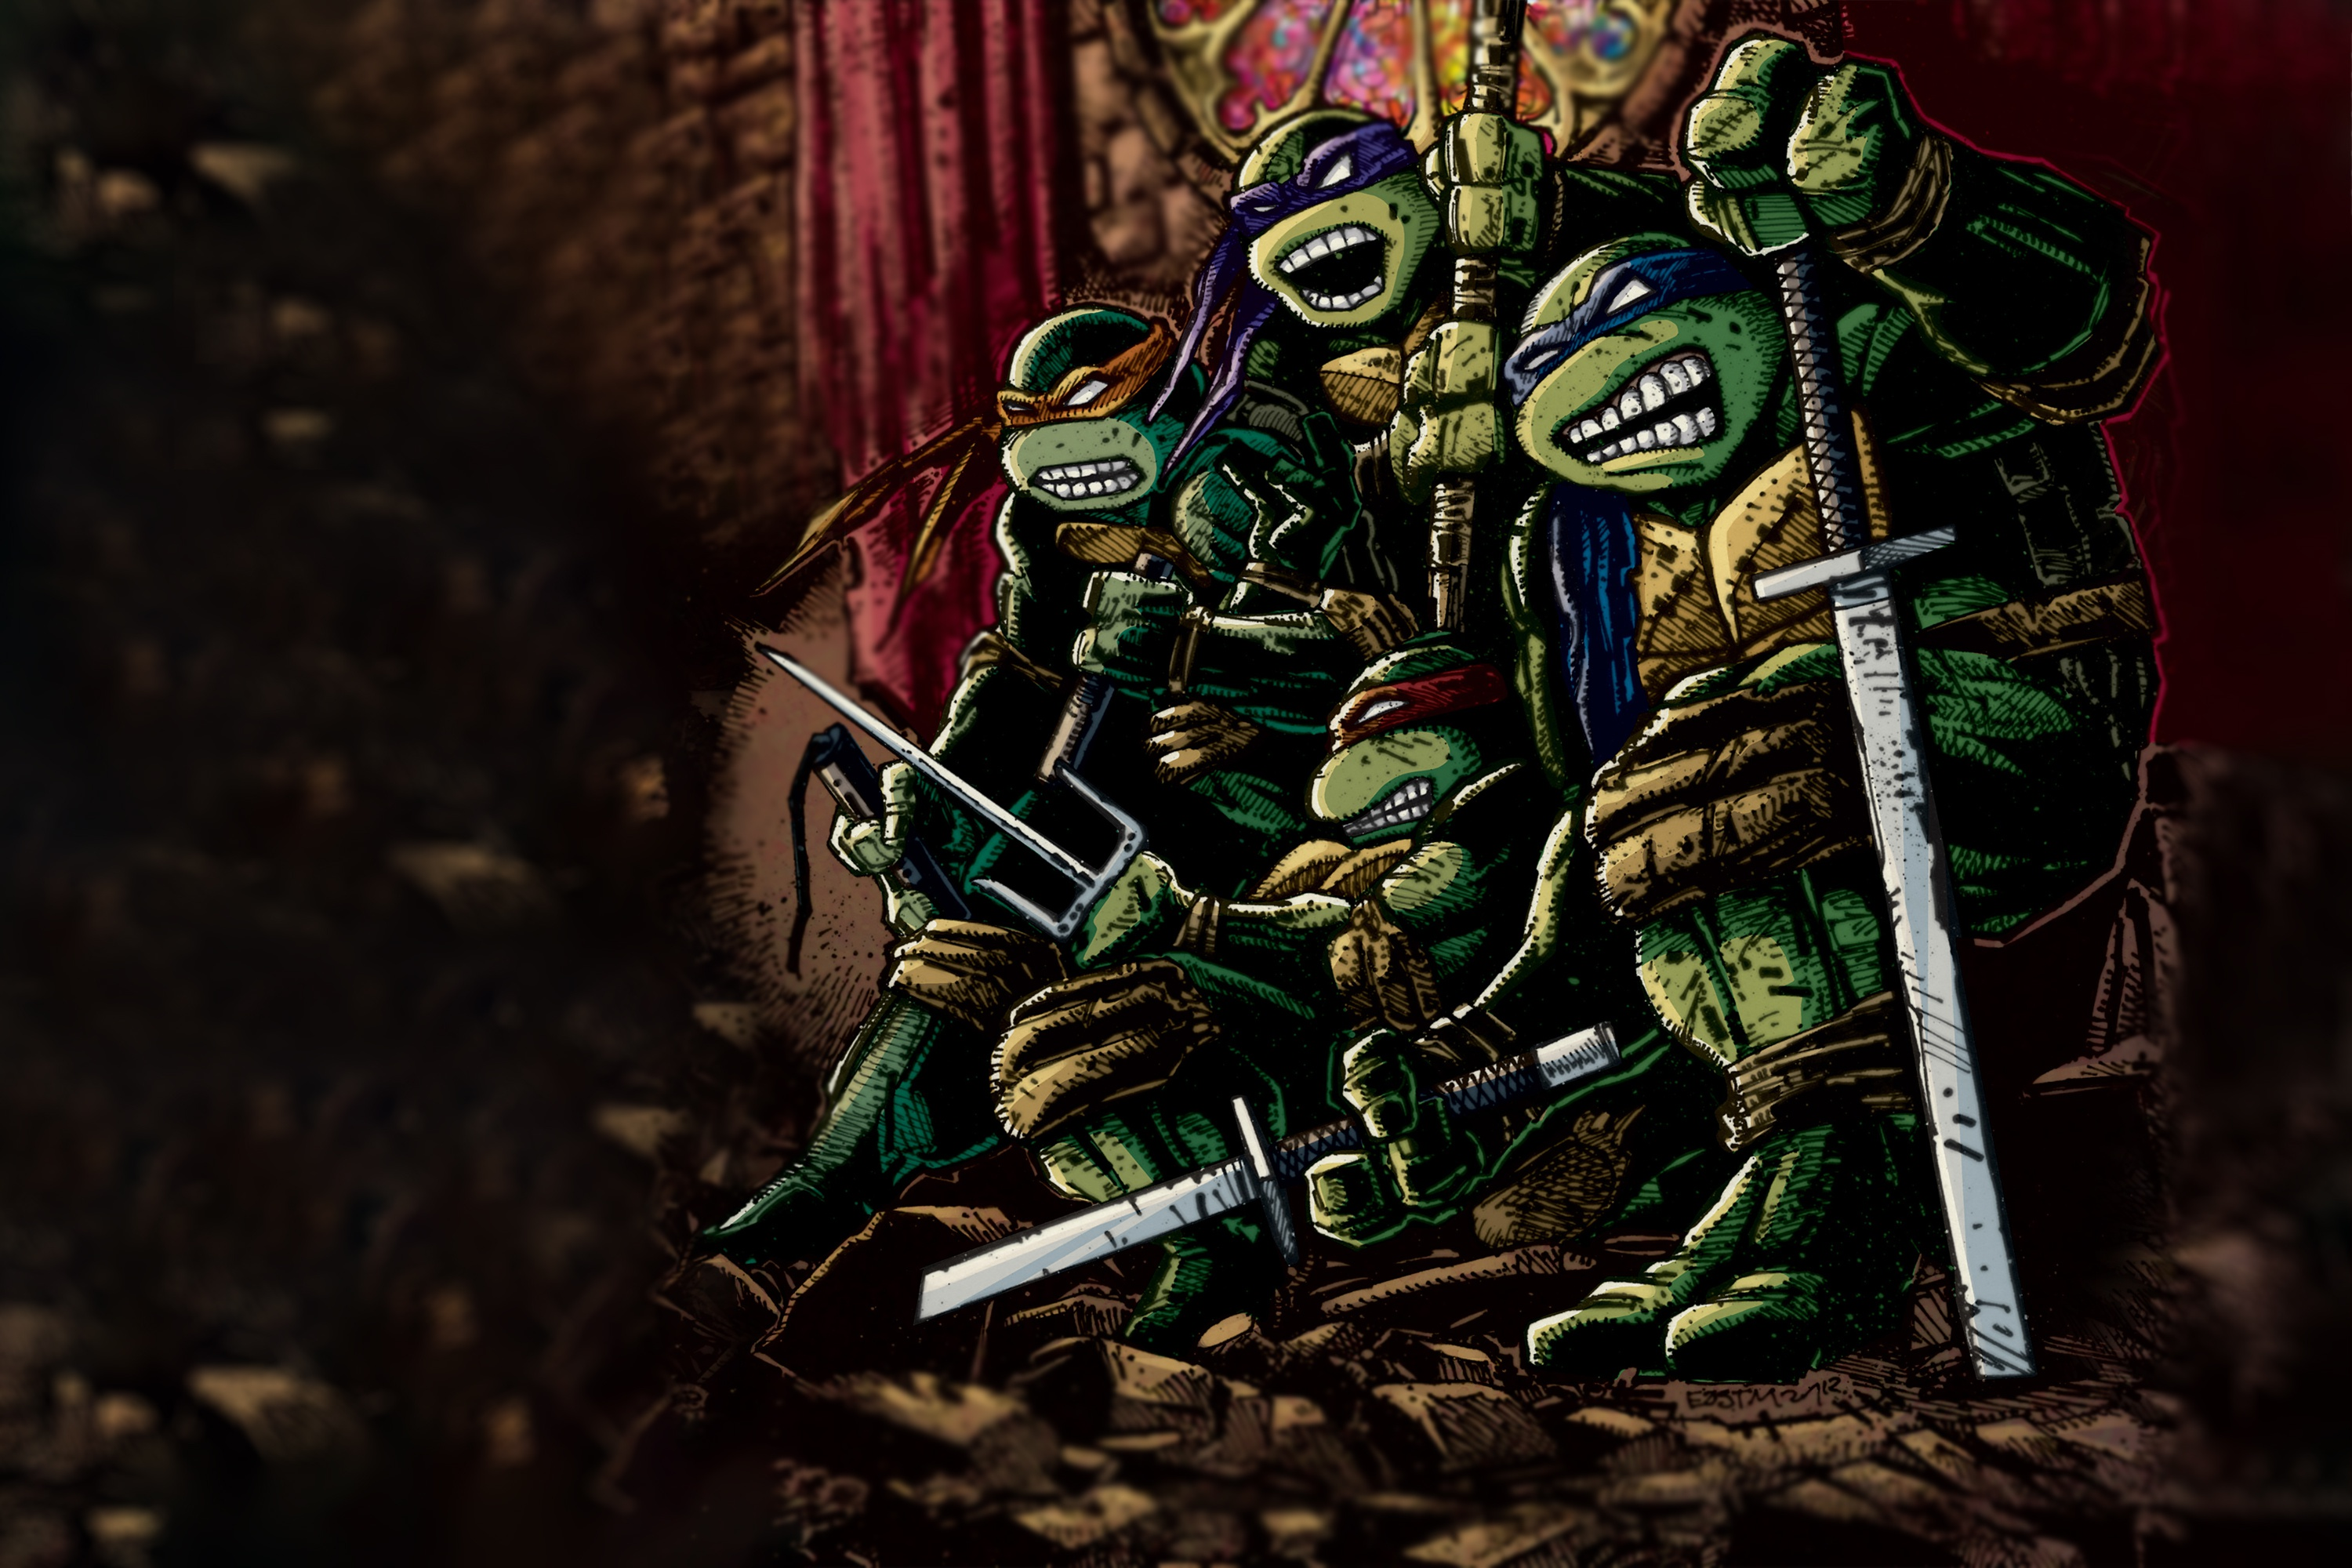 Teenage Mutant Ninja Turtles Hd Wallpaper Background Image